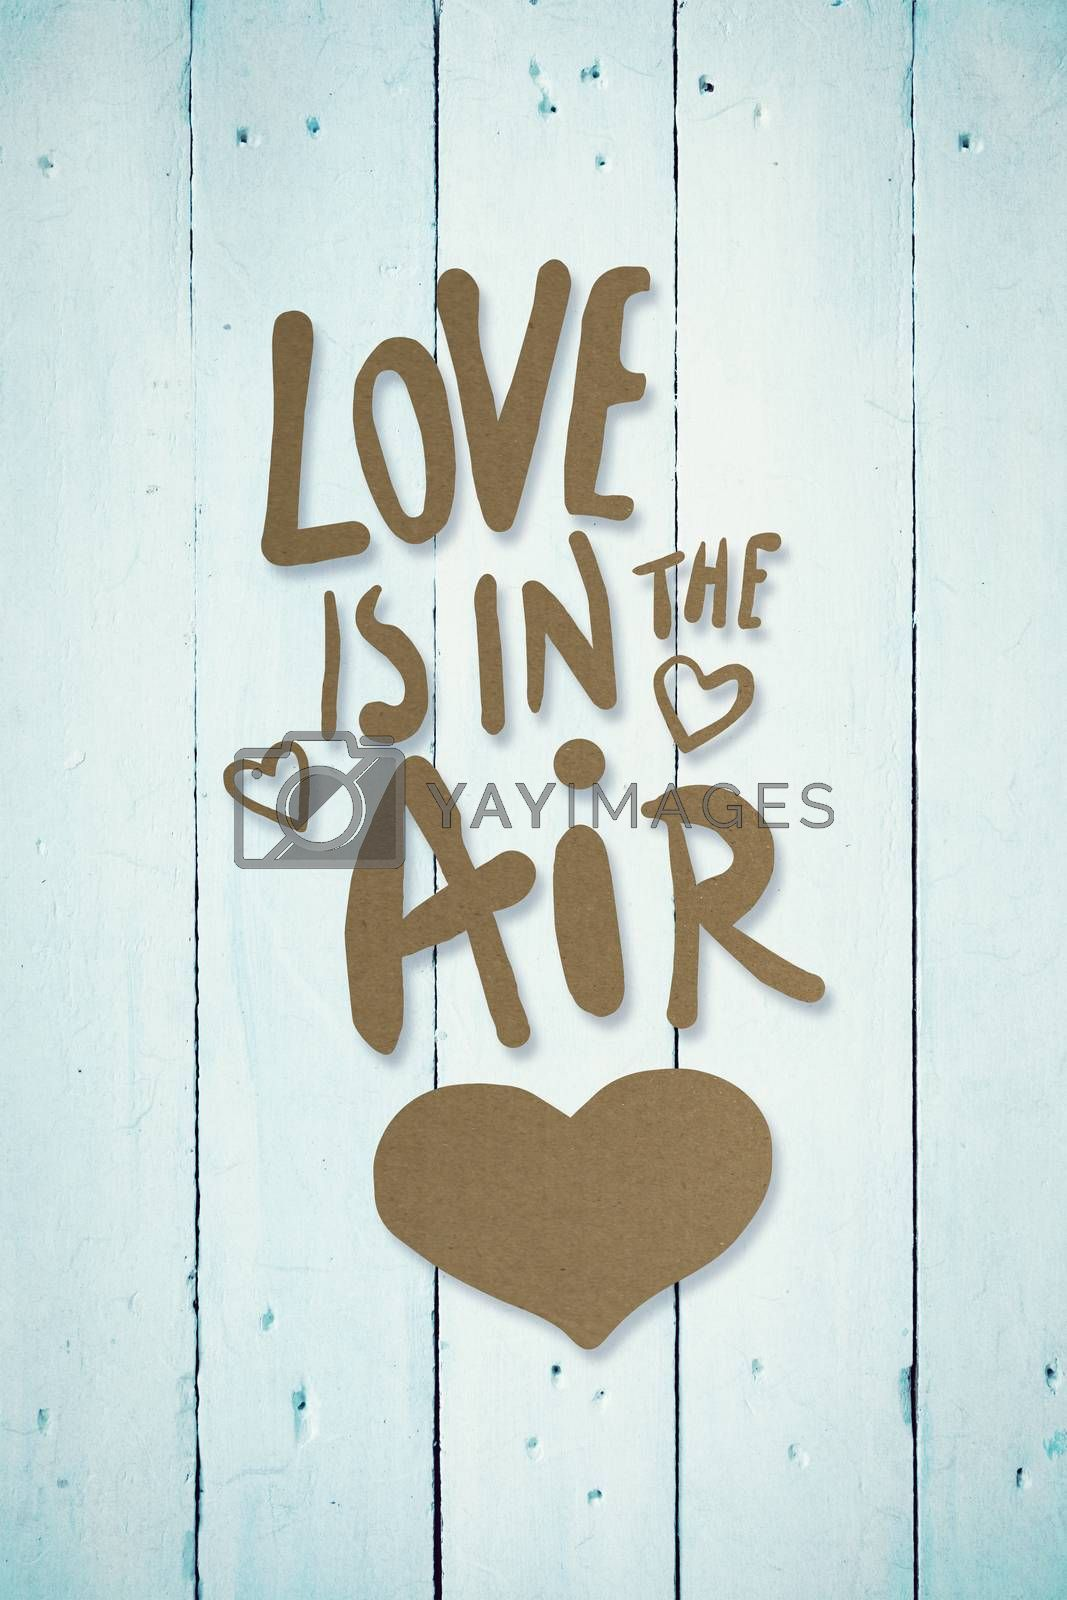 love is in the air against painted blue wooden planks